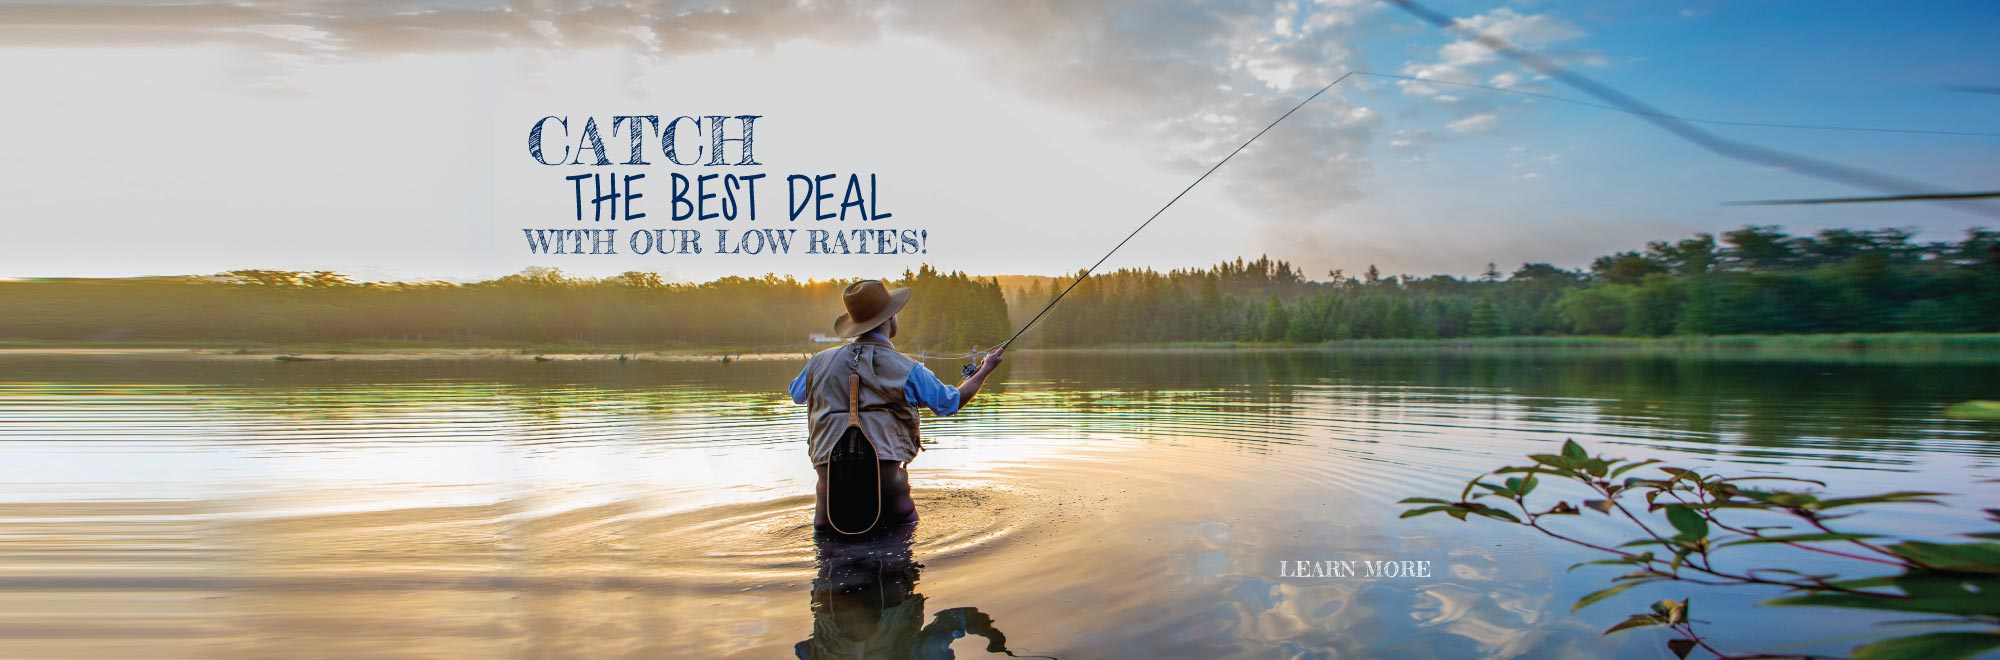 Catch the best deals with our low rates